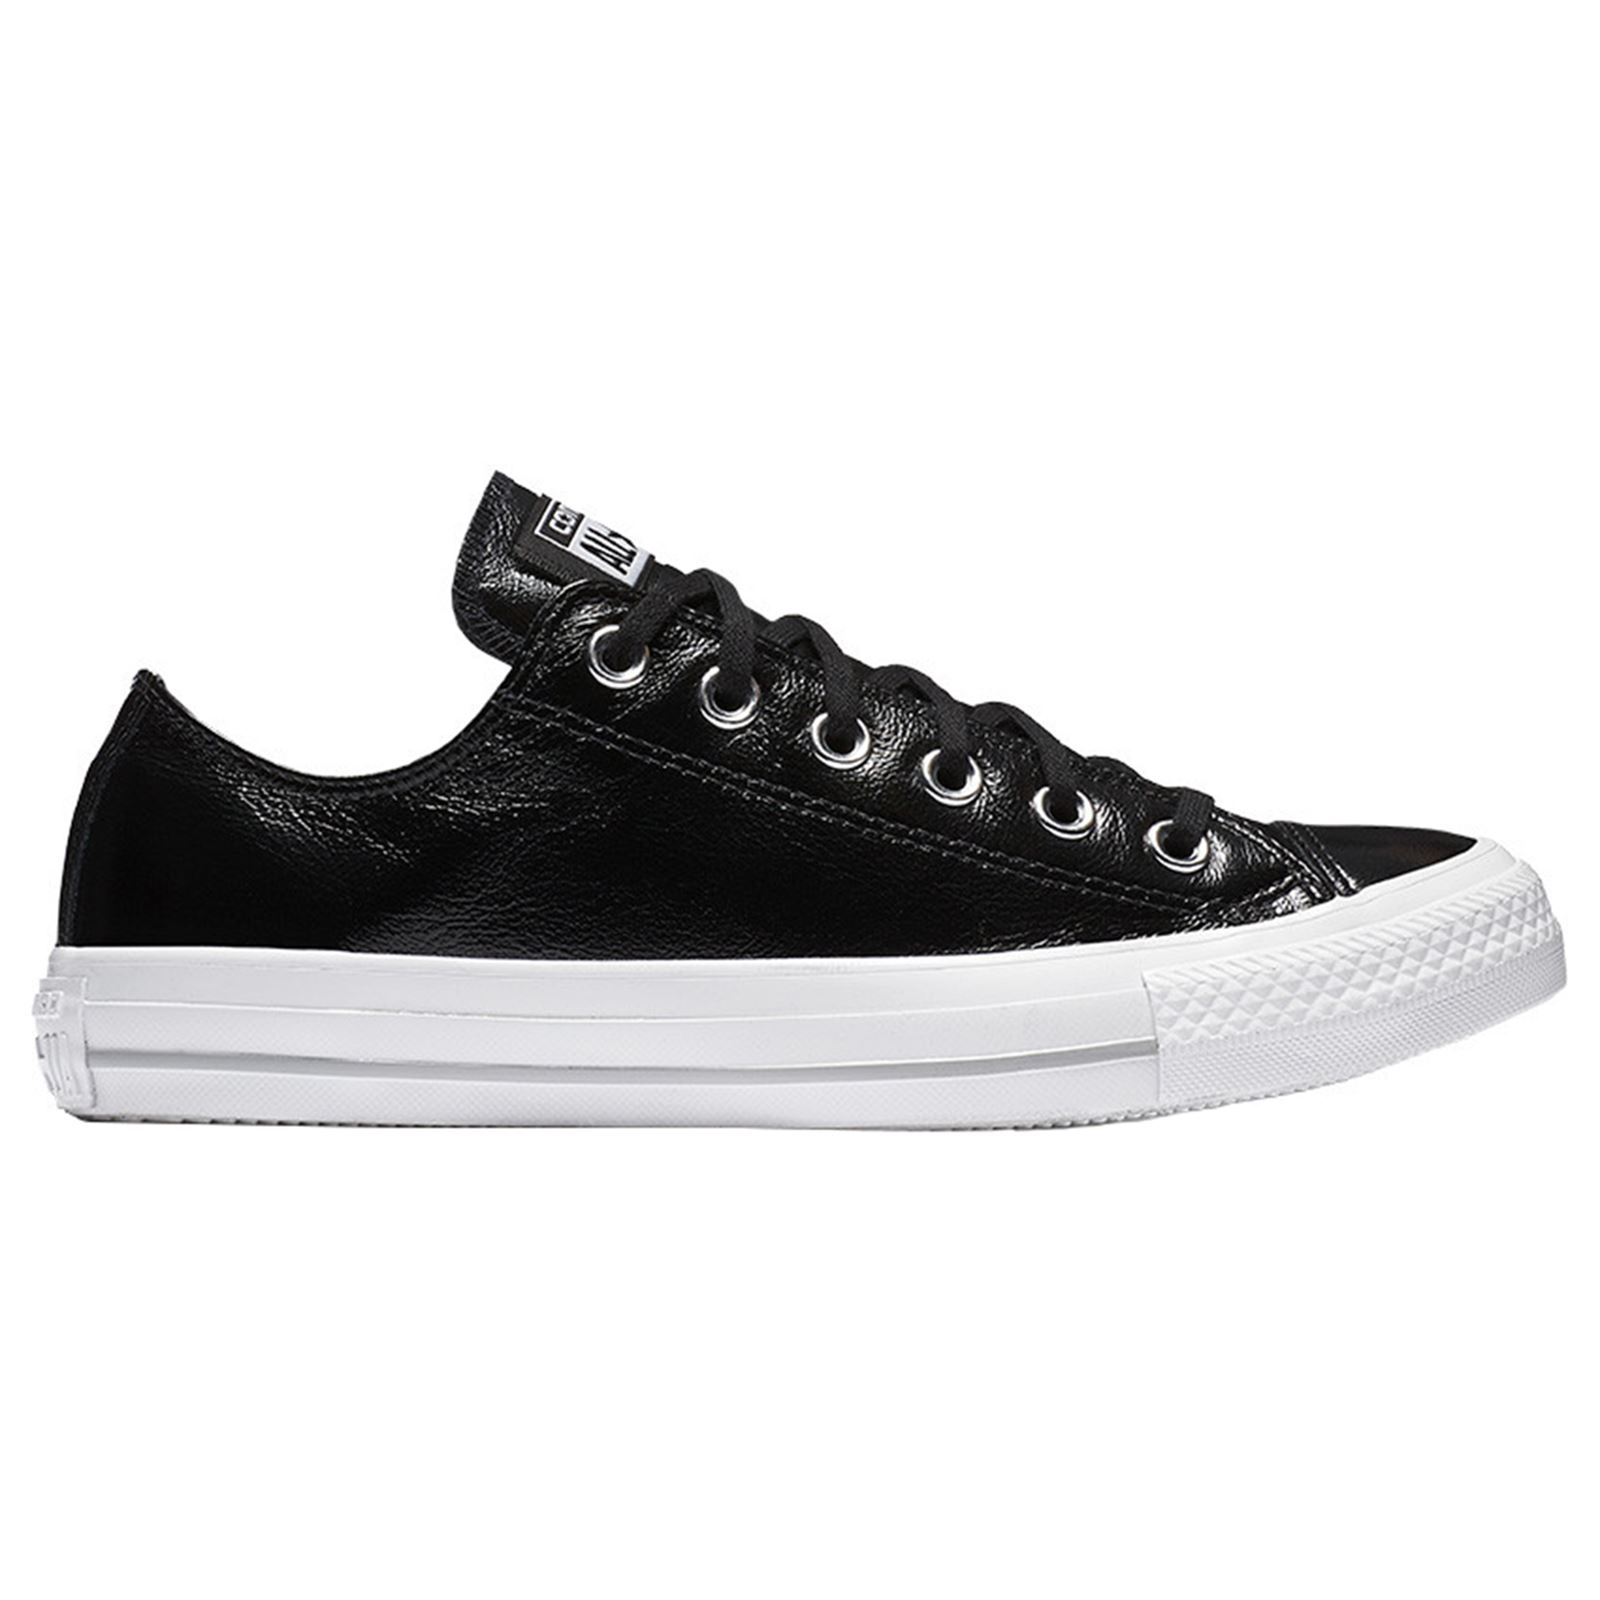 30690a51bc8 Converse Chuck Taylor All Star Ox Black White Womens Patent Leather Trainers